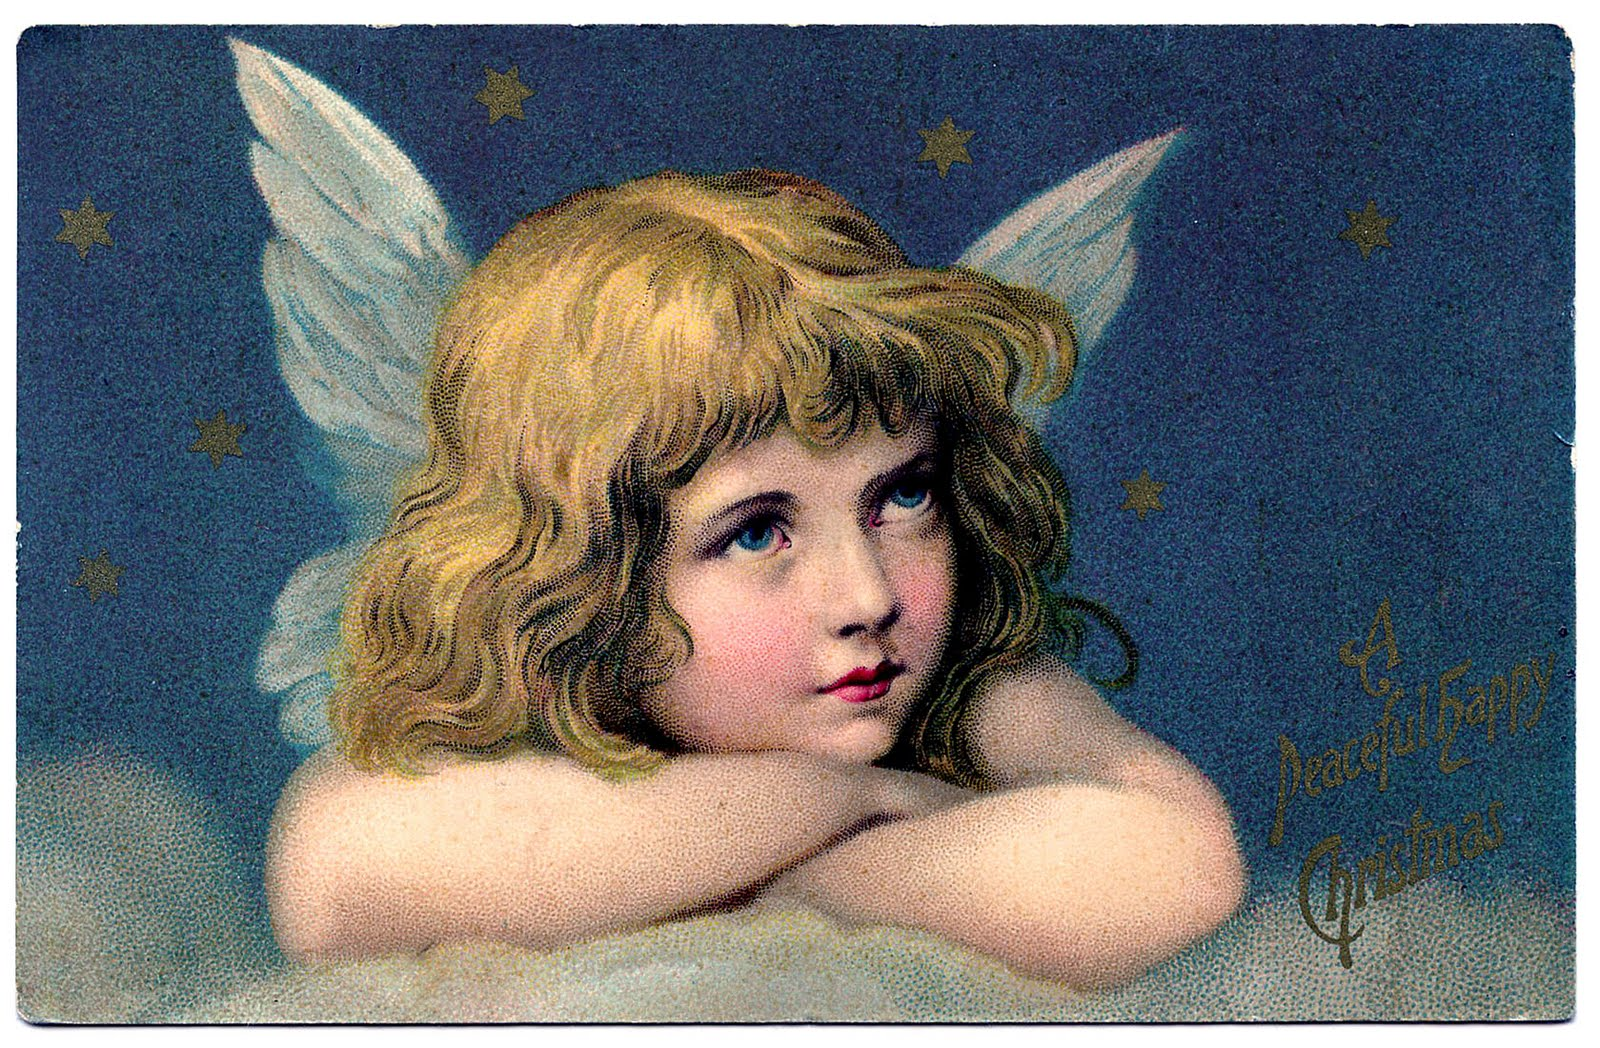 Vintage Graphic - Amazing Angel with Stars - The Graphics Fairy